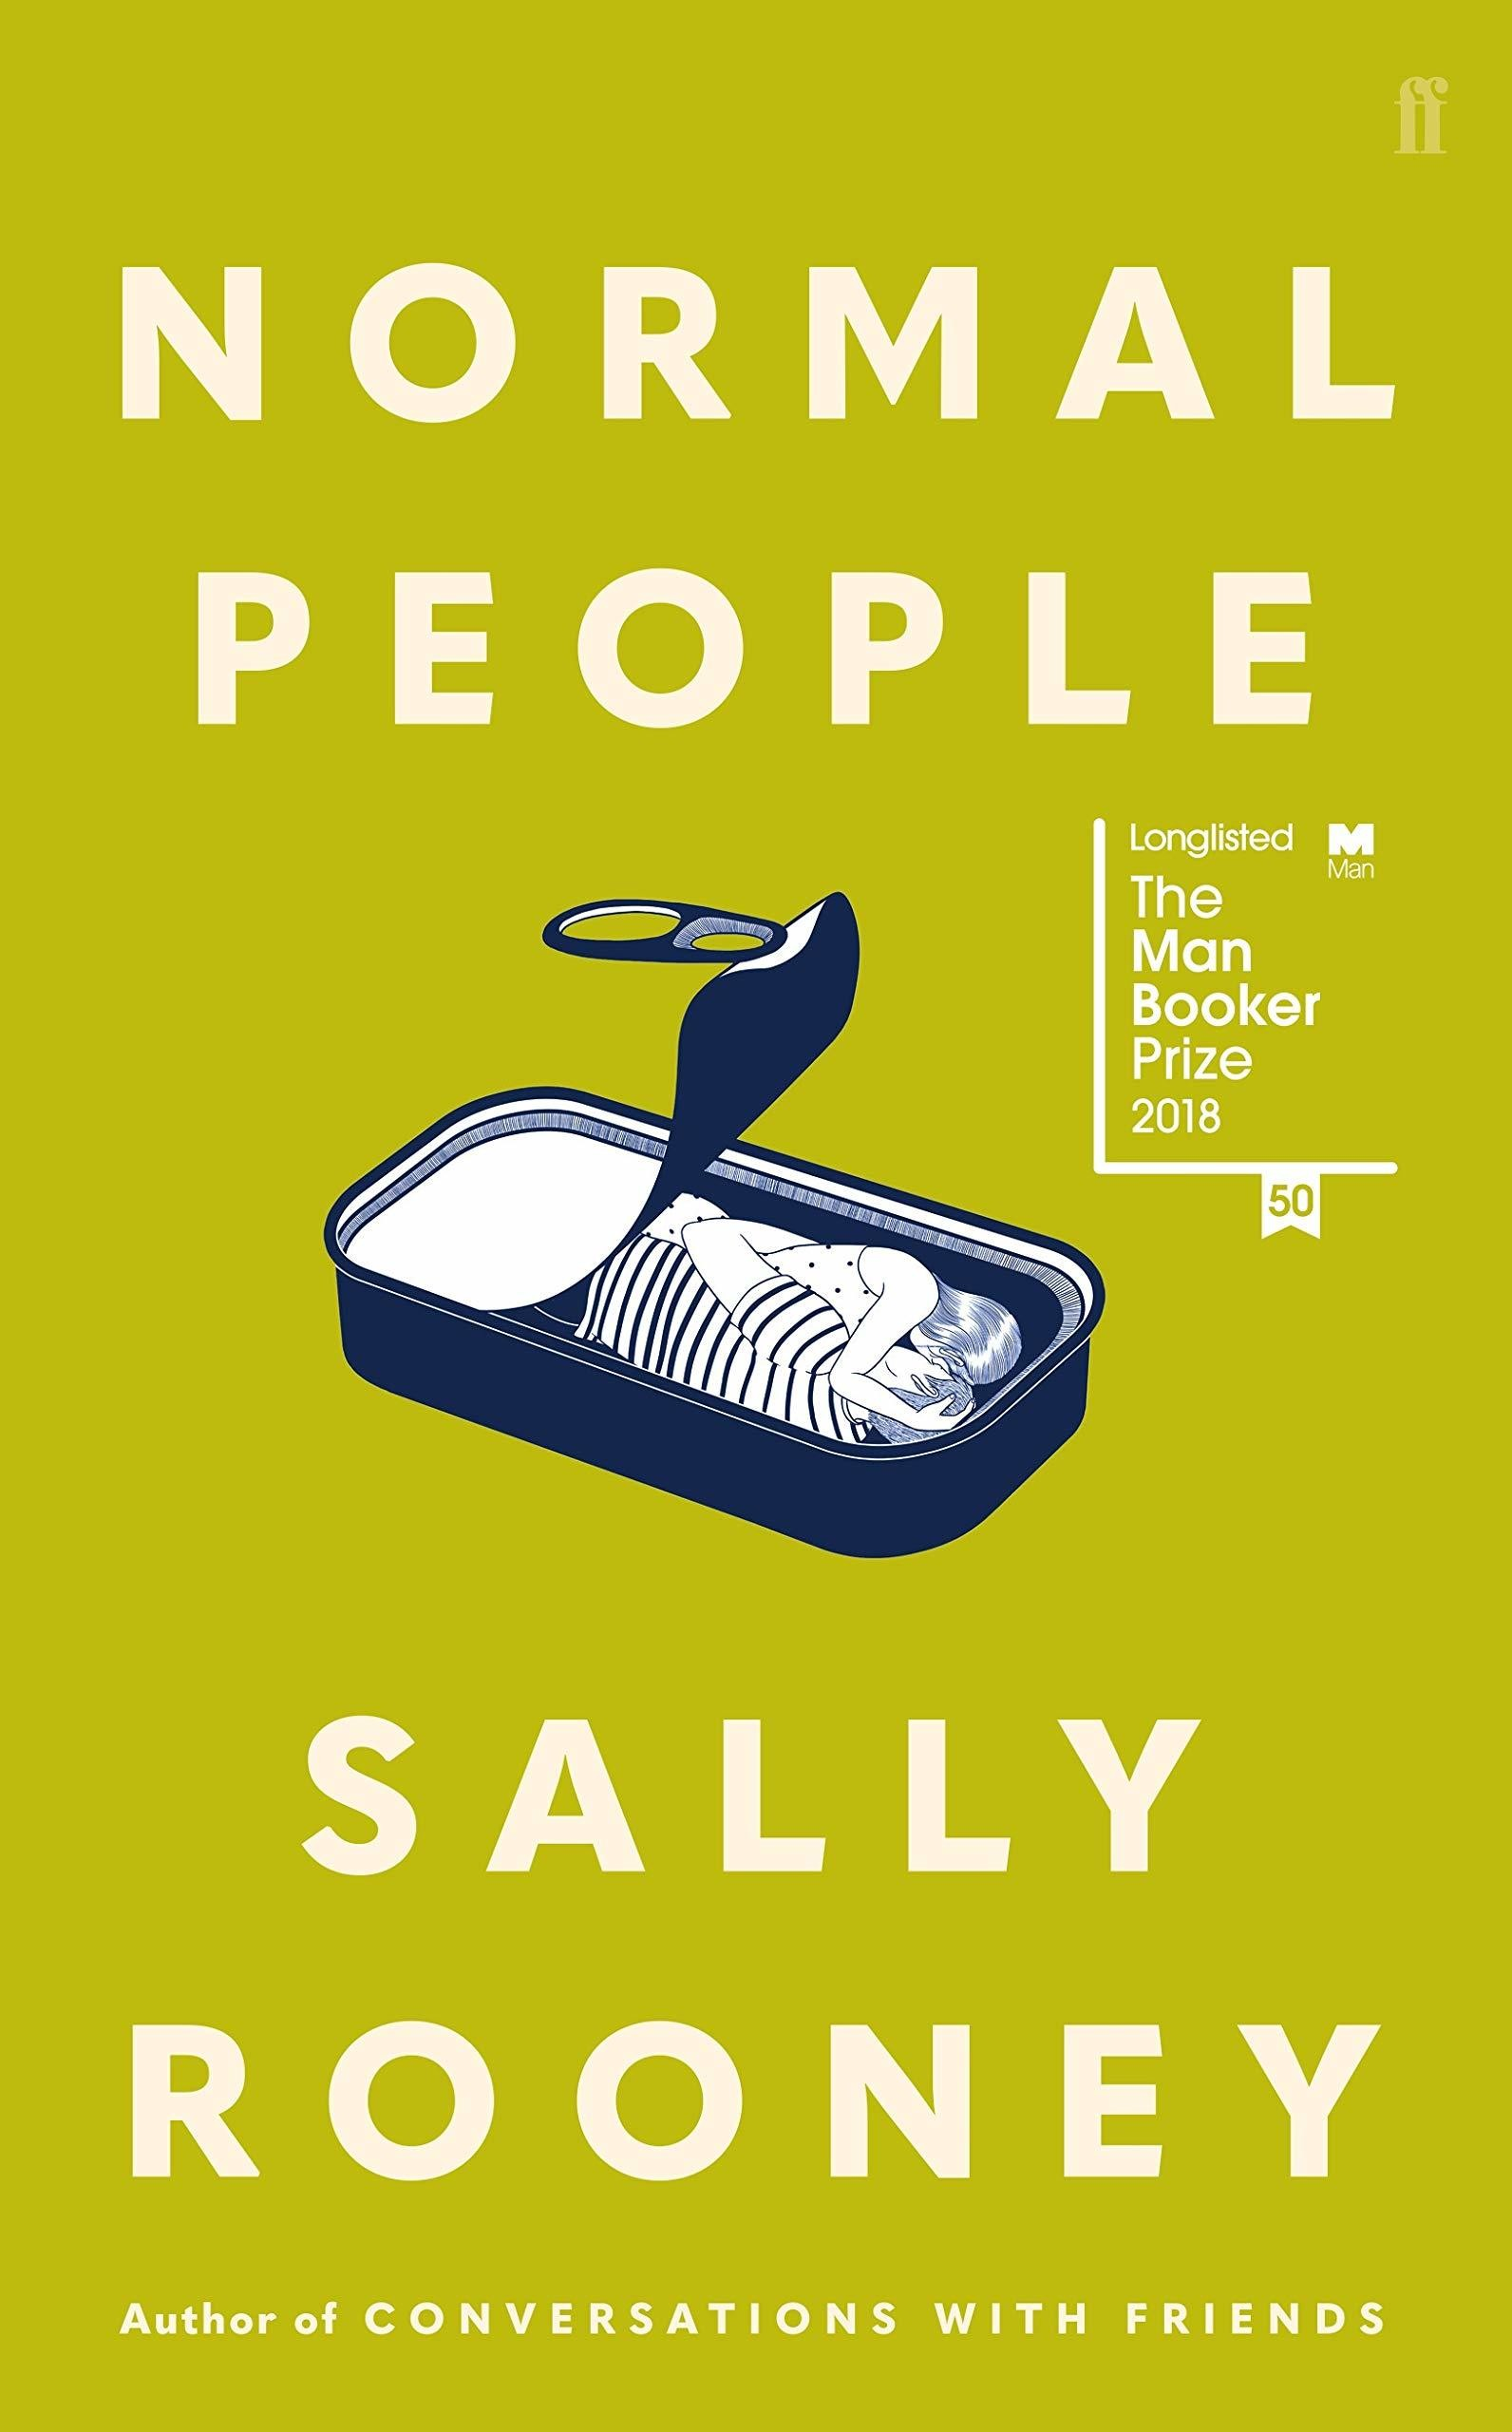 'Normal People' by Sally Rooney novel reading read literature book barack obama